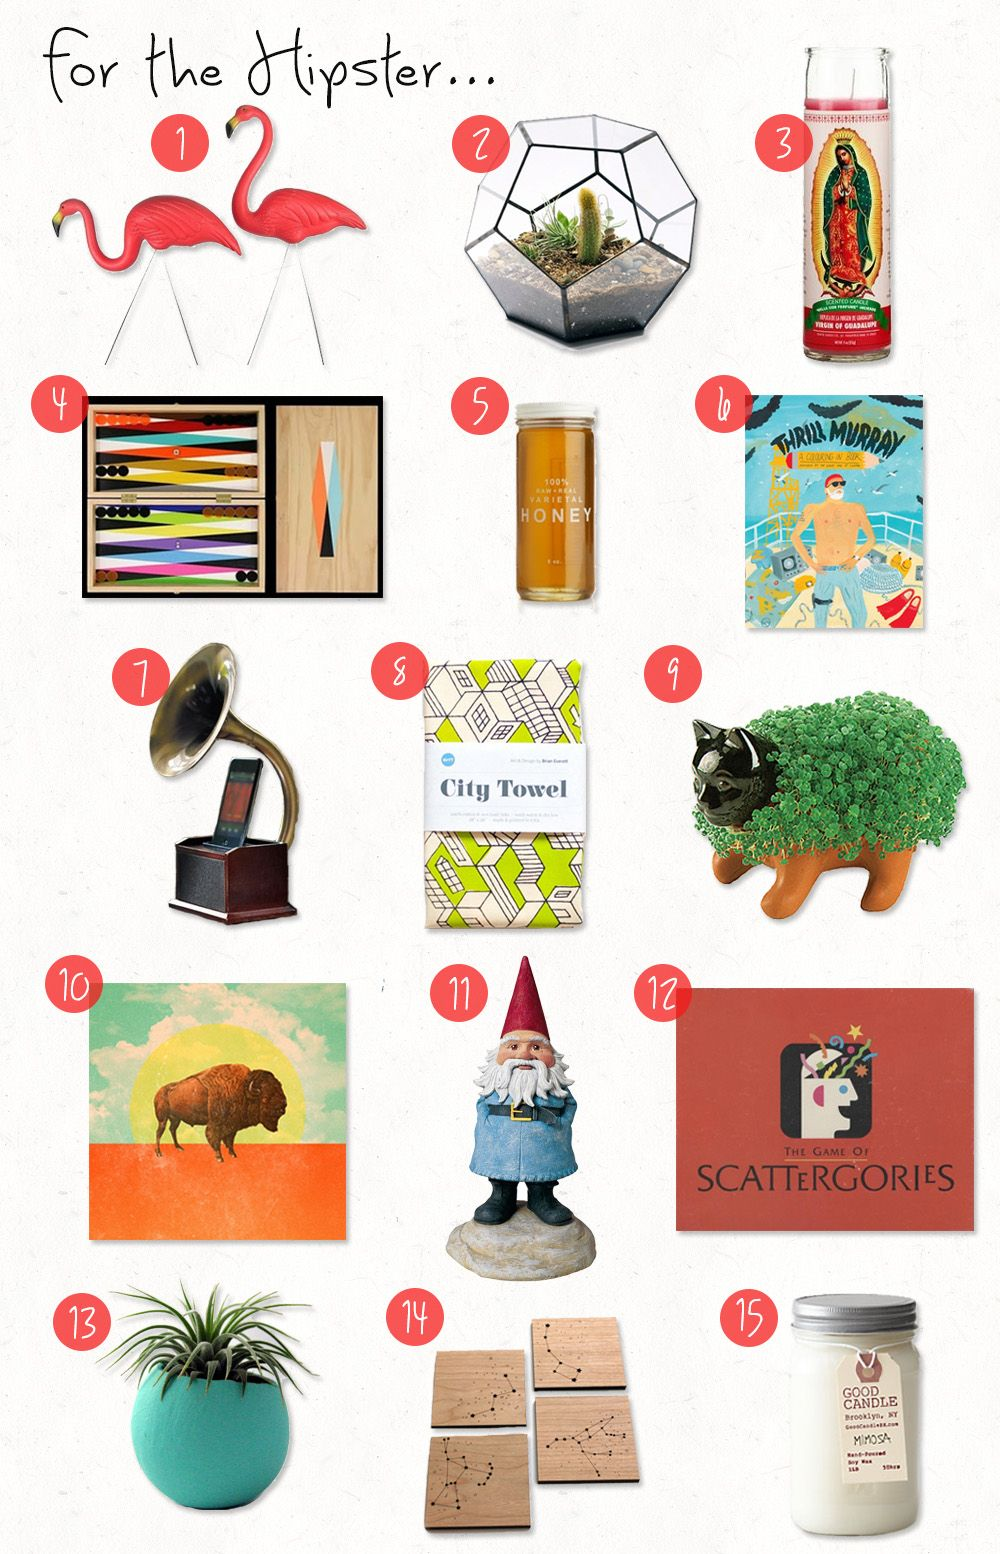 15 Perfect housewarming gift ideas for the Hipster! | Gifts ...